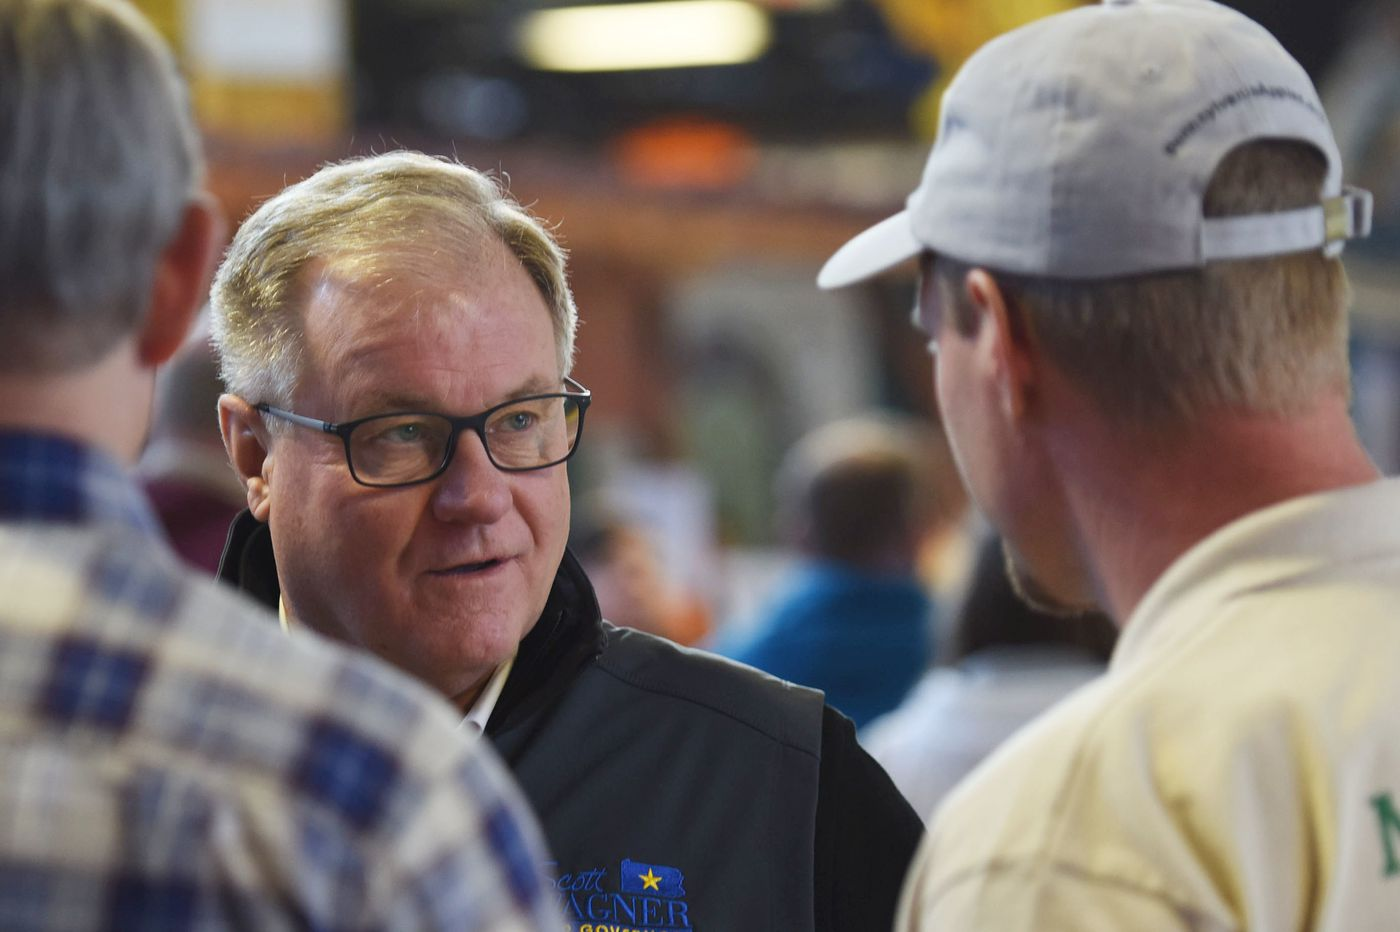 Scott Wagner's running a campaign like Trump's, but at least he's running a campaign